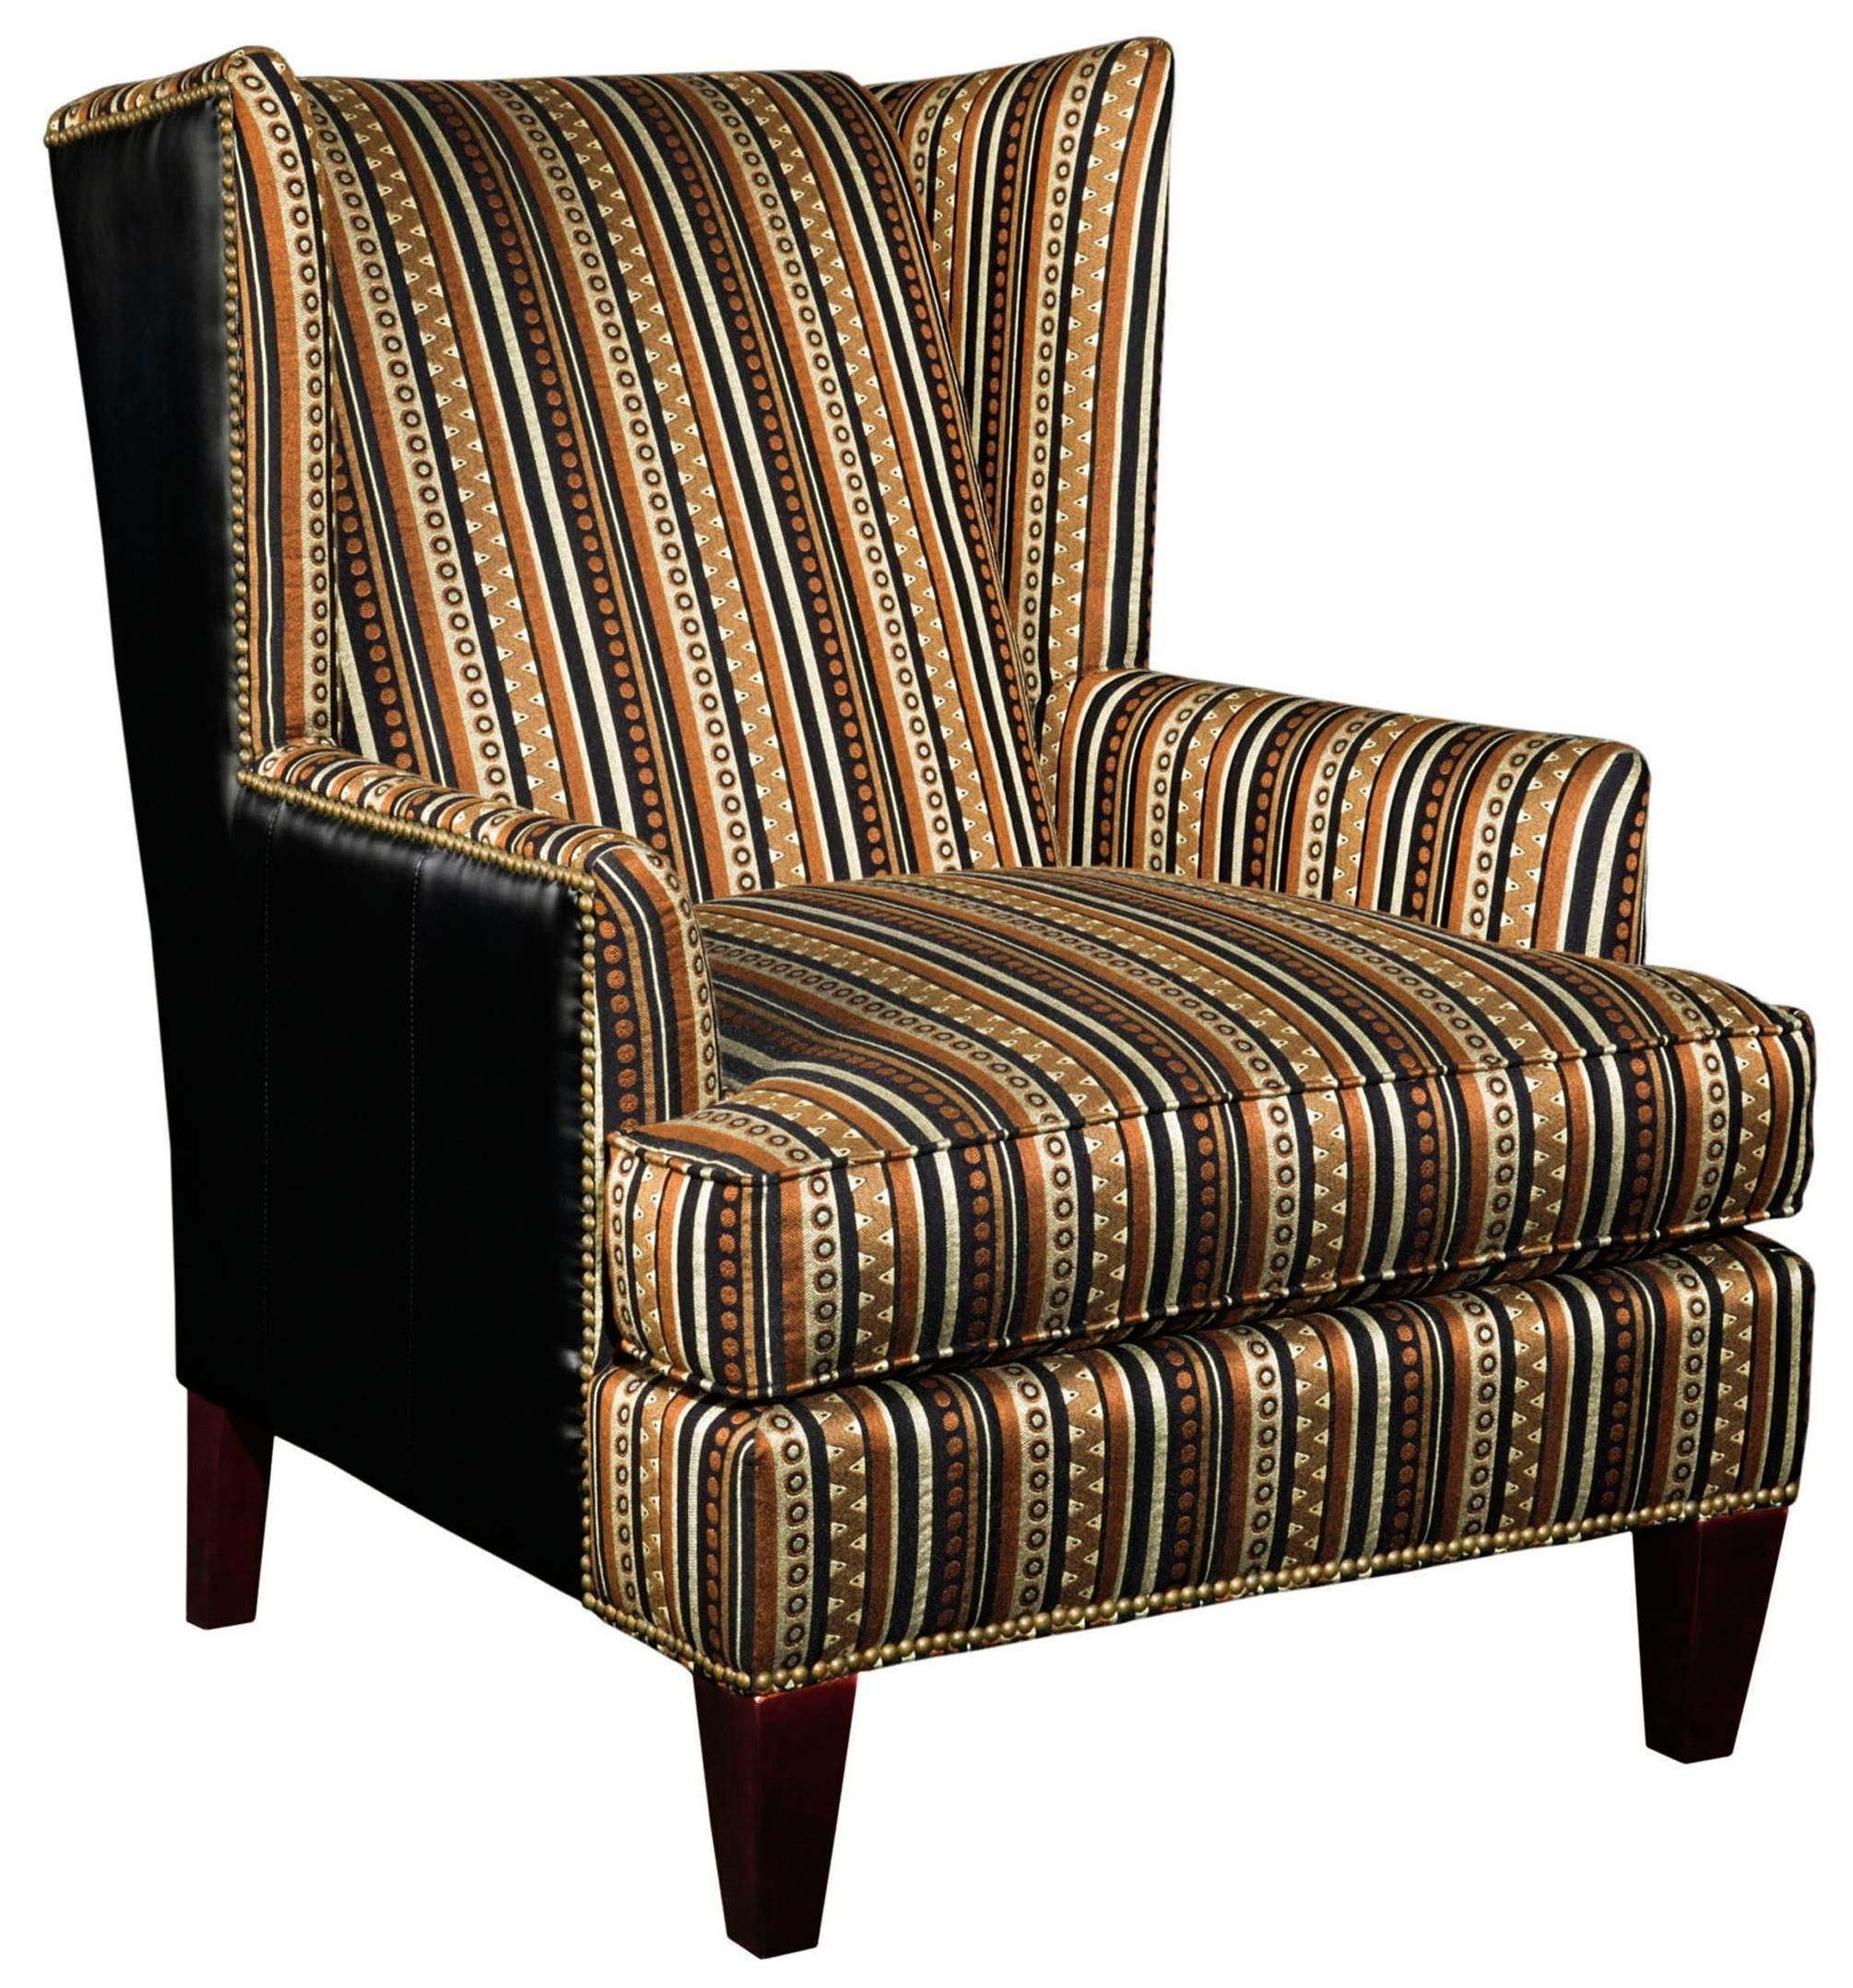 Hannigan Accent Chair Ottoman: Accent Chairs And Ottomans Trenton Modern Accent Chair By